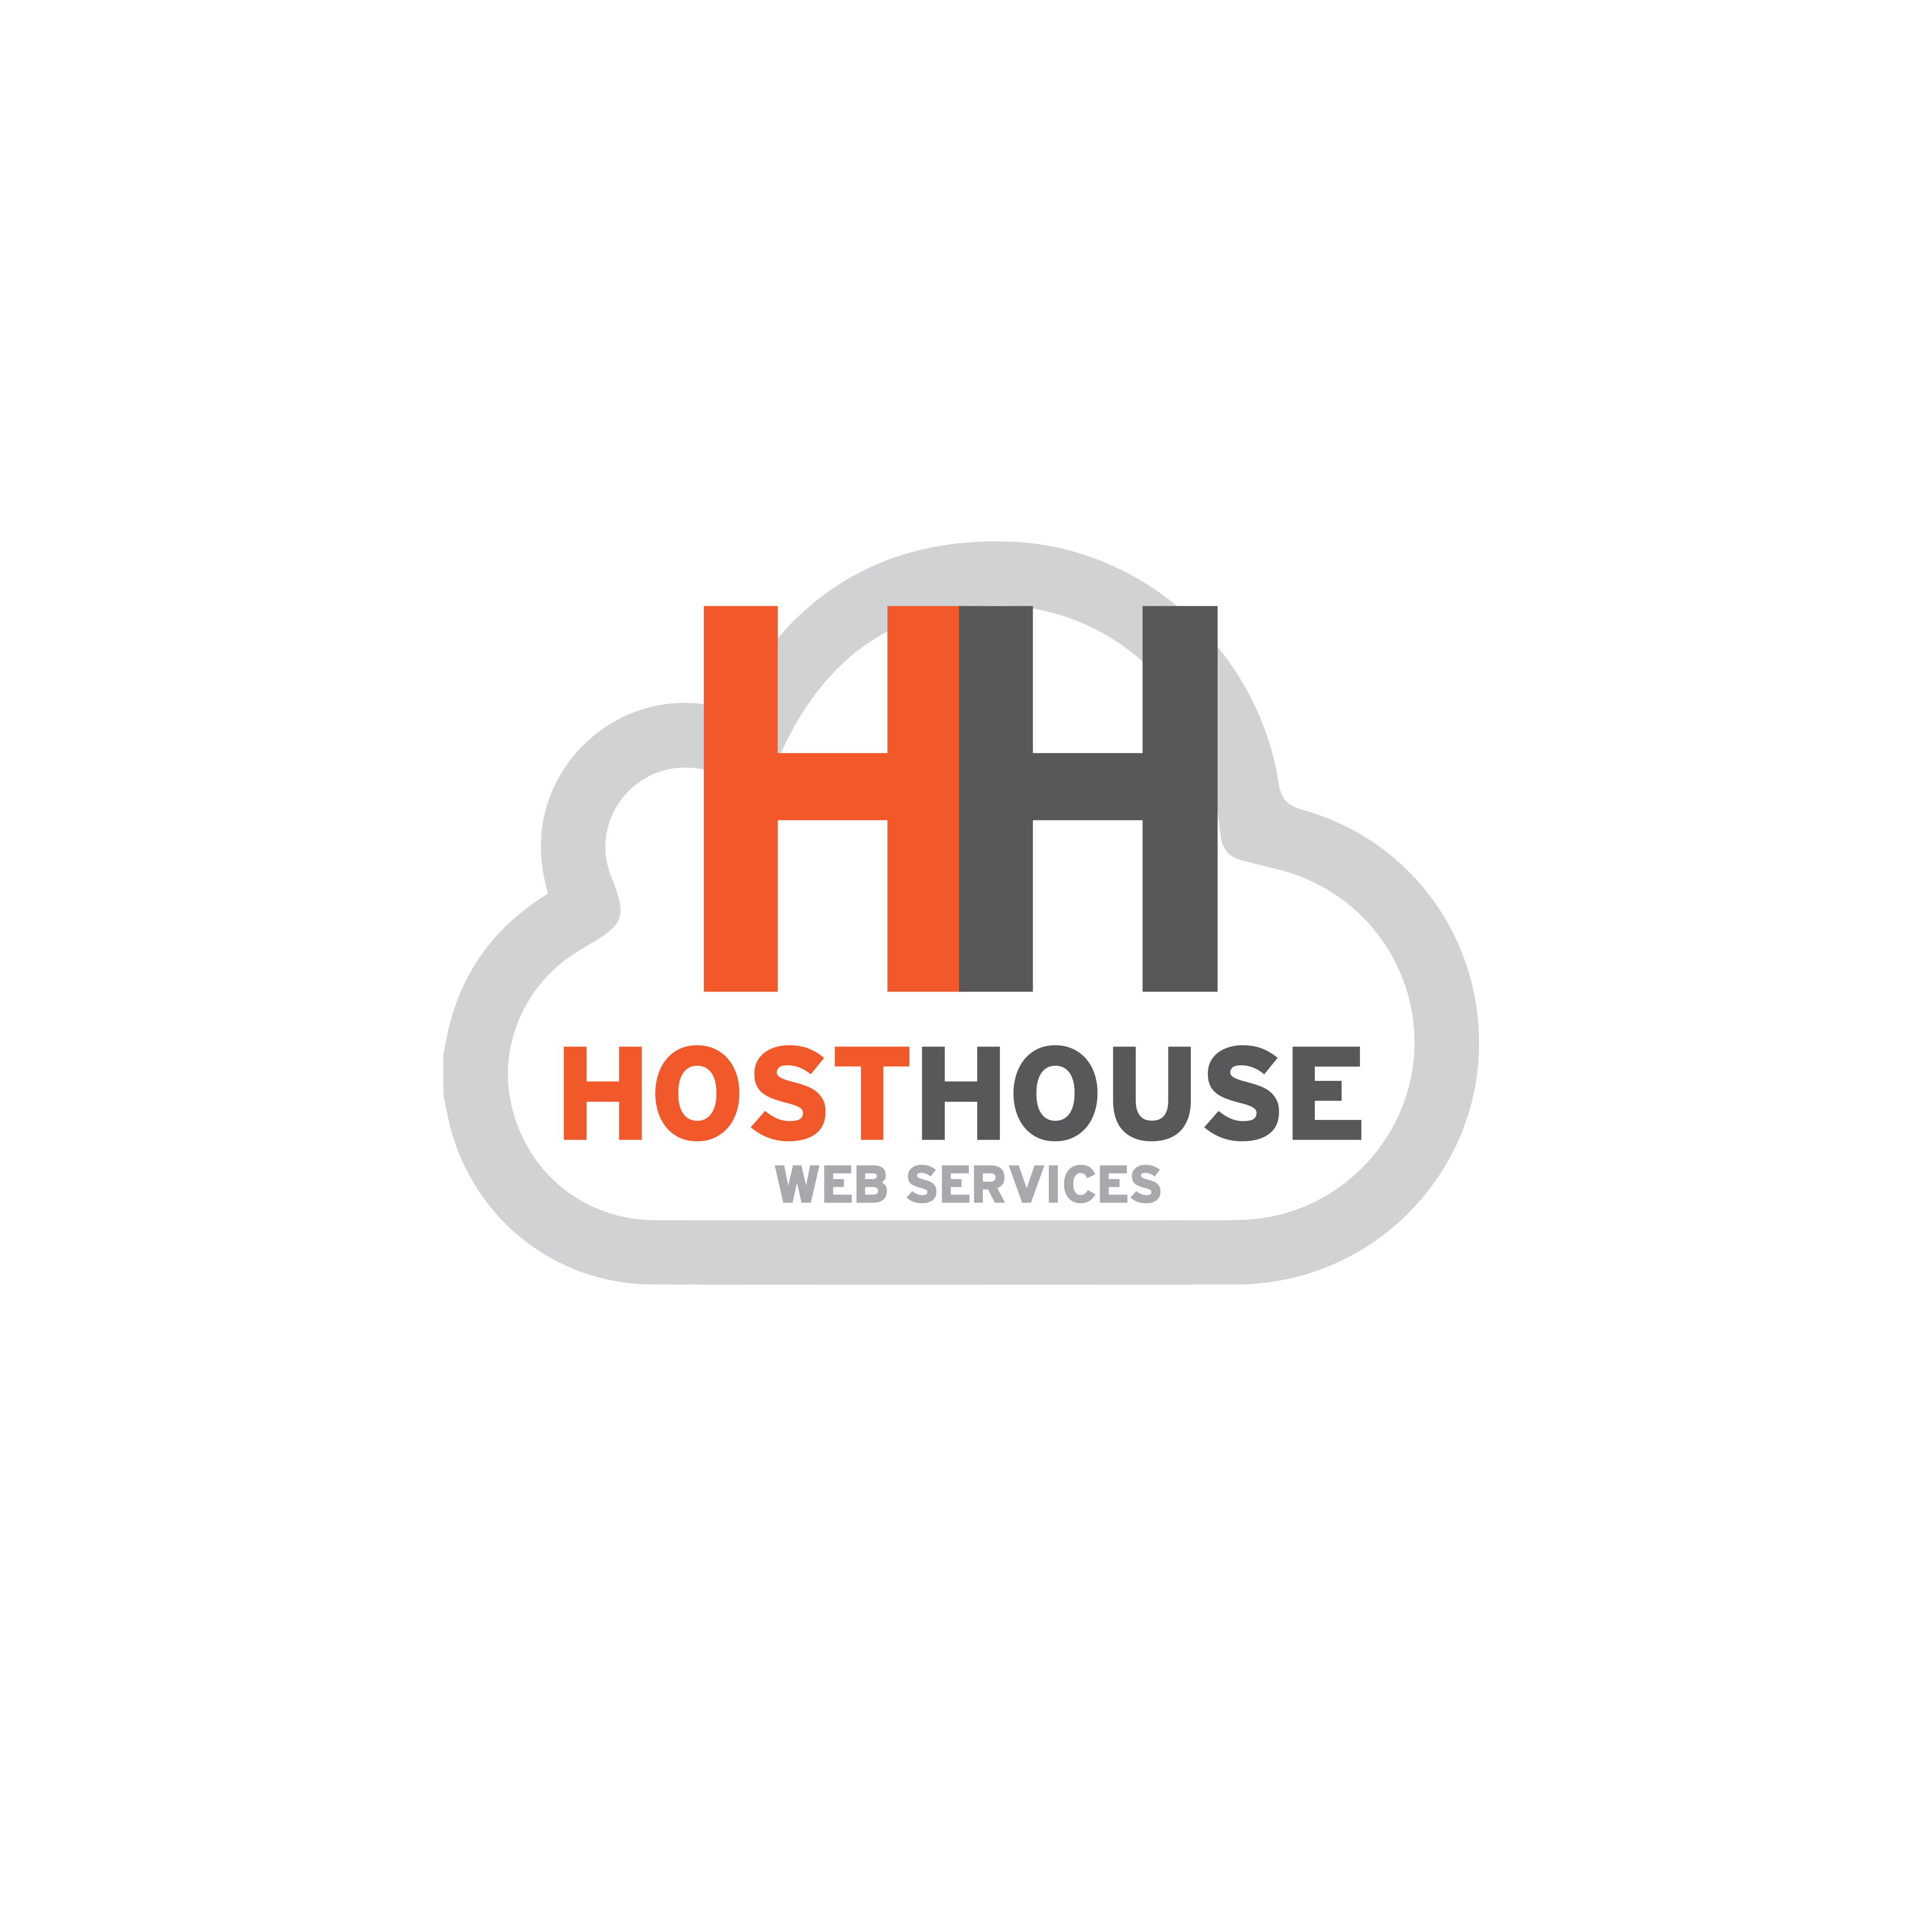 Hosthouse Web Services